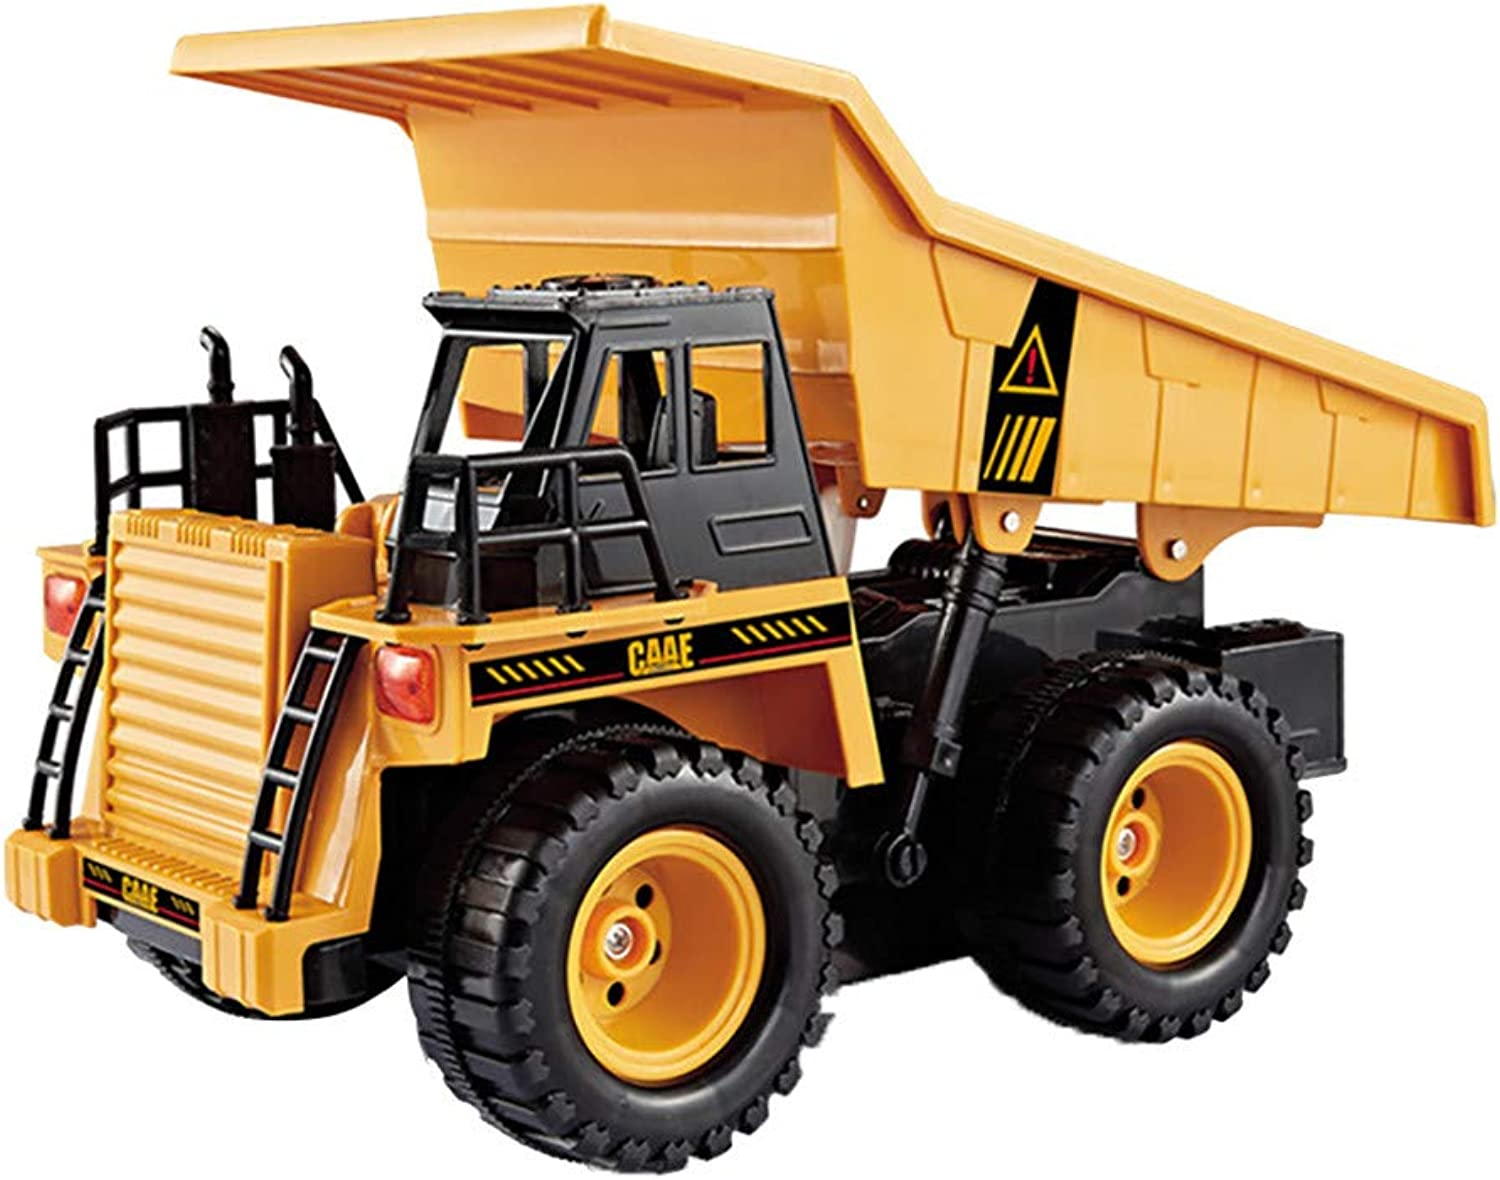 JXQN RC Toy 6CH Remote Control Big Dump Truck Loaded Sand Vehicle Toys 1 18 Scale Full Functional Battery Powered Construction Toy (A)